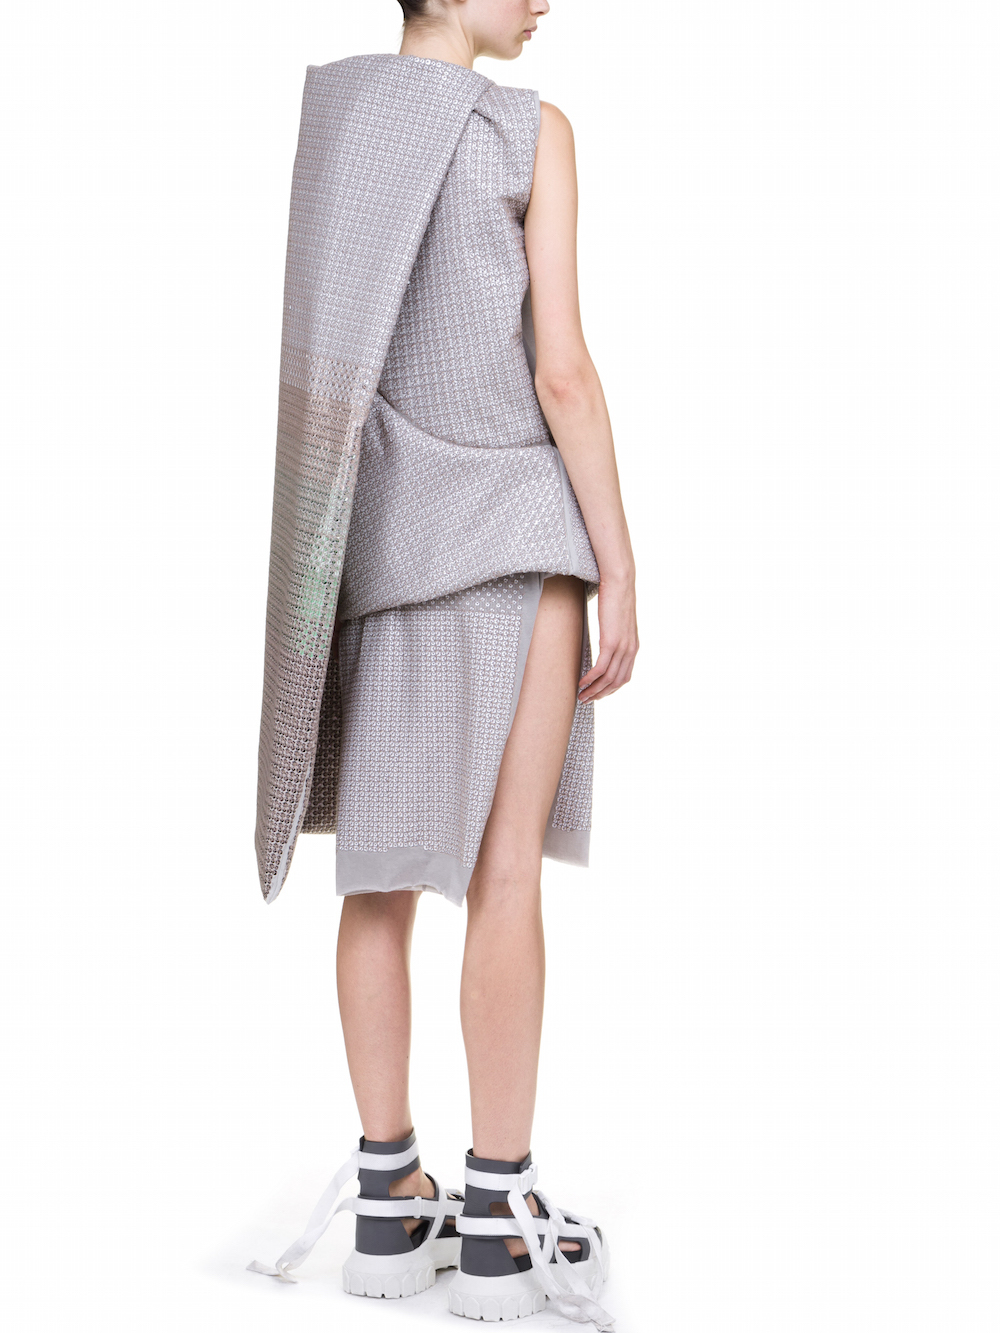 RICK OWENS MUSHROOM TUNIC IN GREY WITH SEQUIN